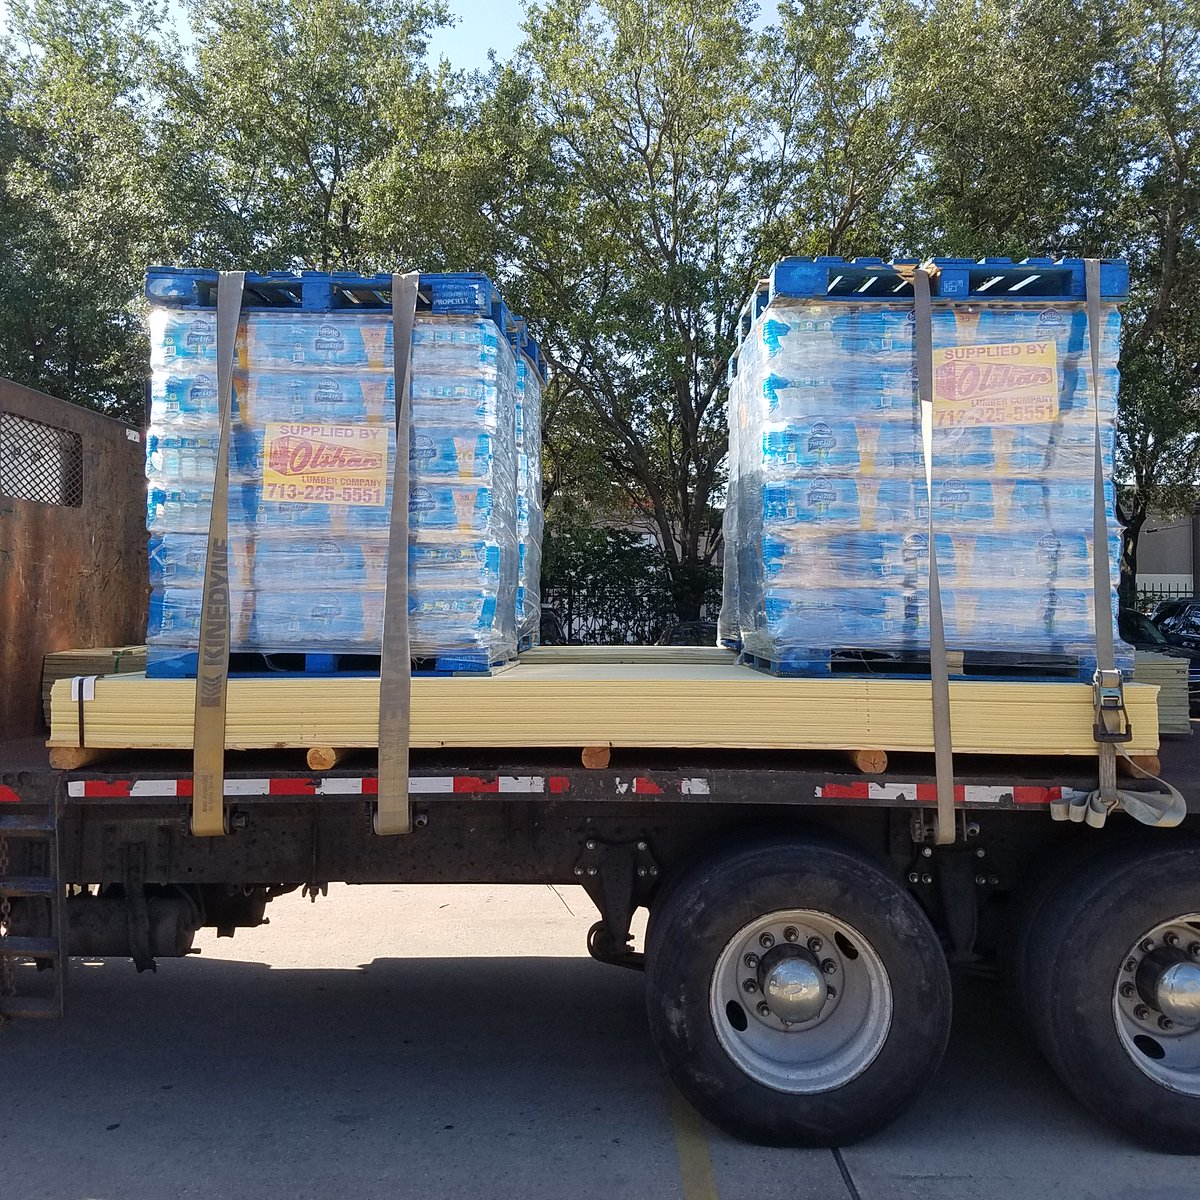 Mattressmack On Twitter Thank You To Olshan Lumber Who Brought Us Four Pallets Of Water We Are So Grateful Https T Co 4q5644154z